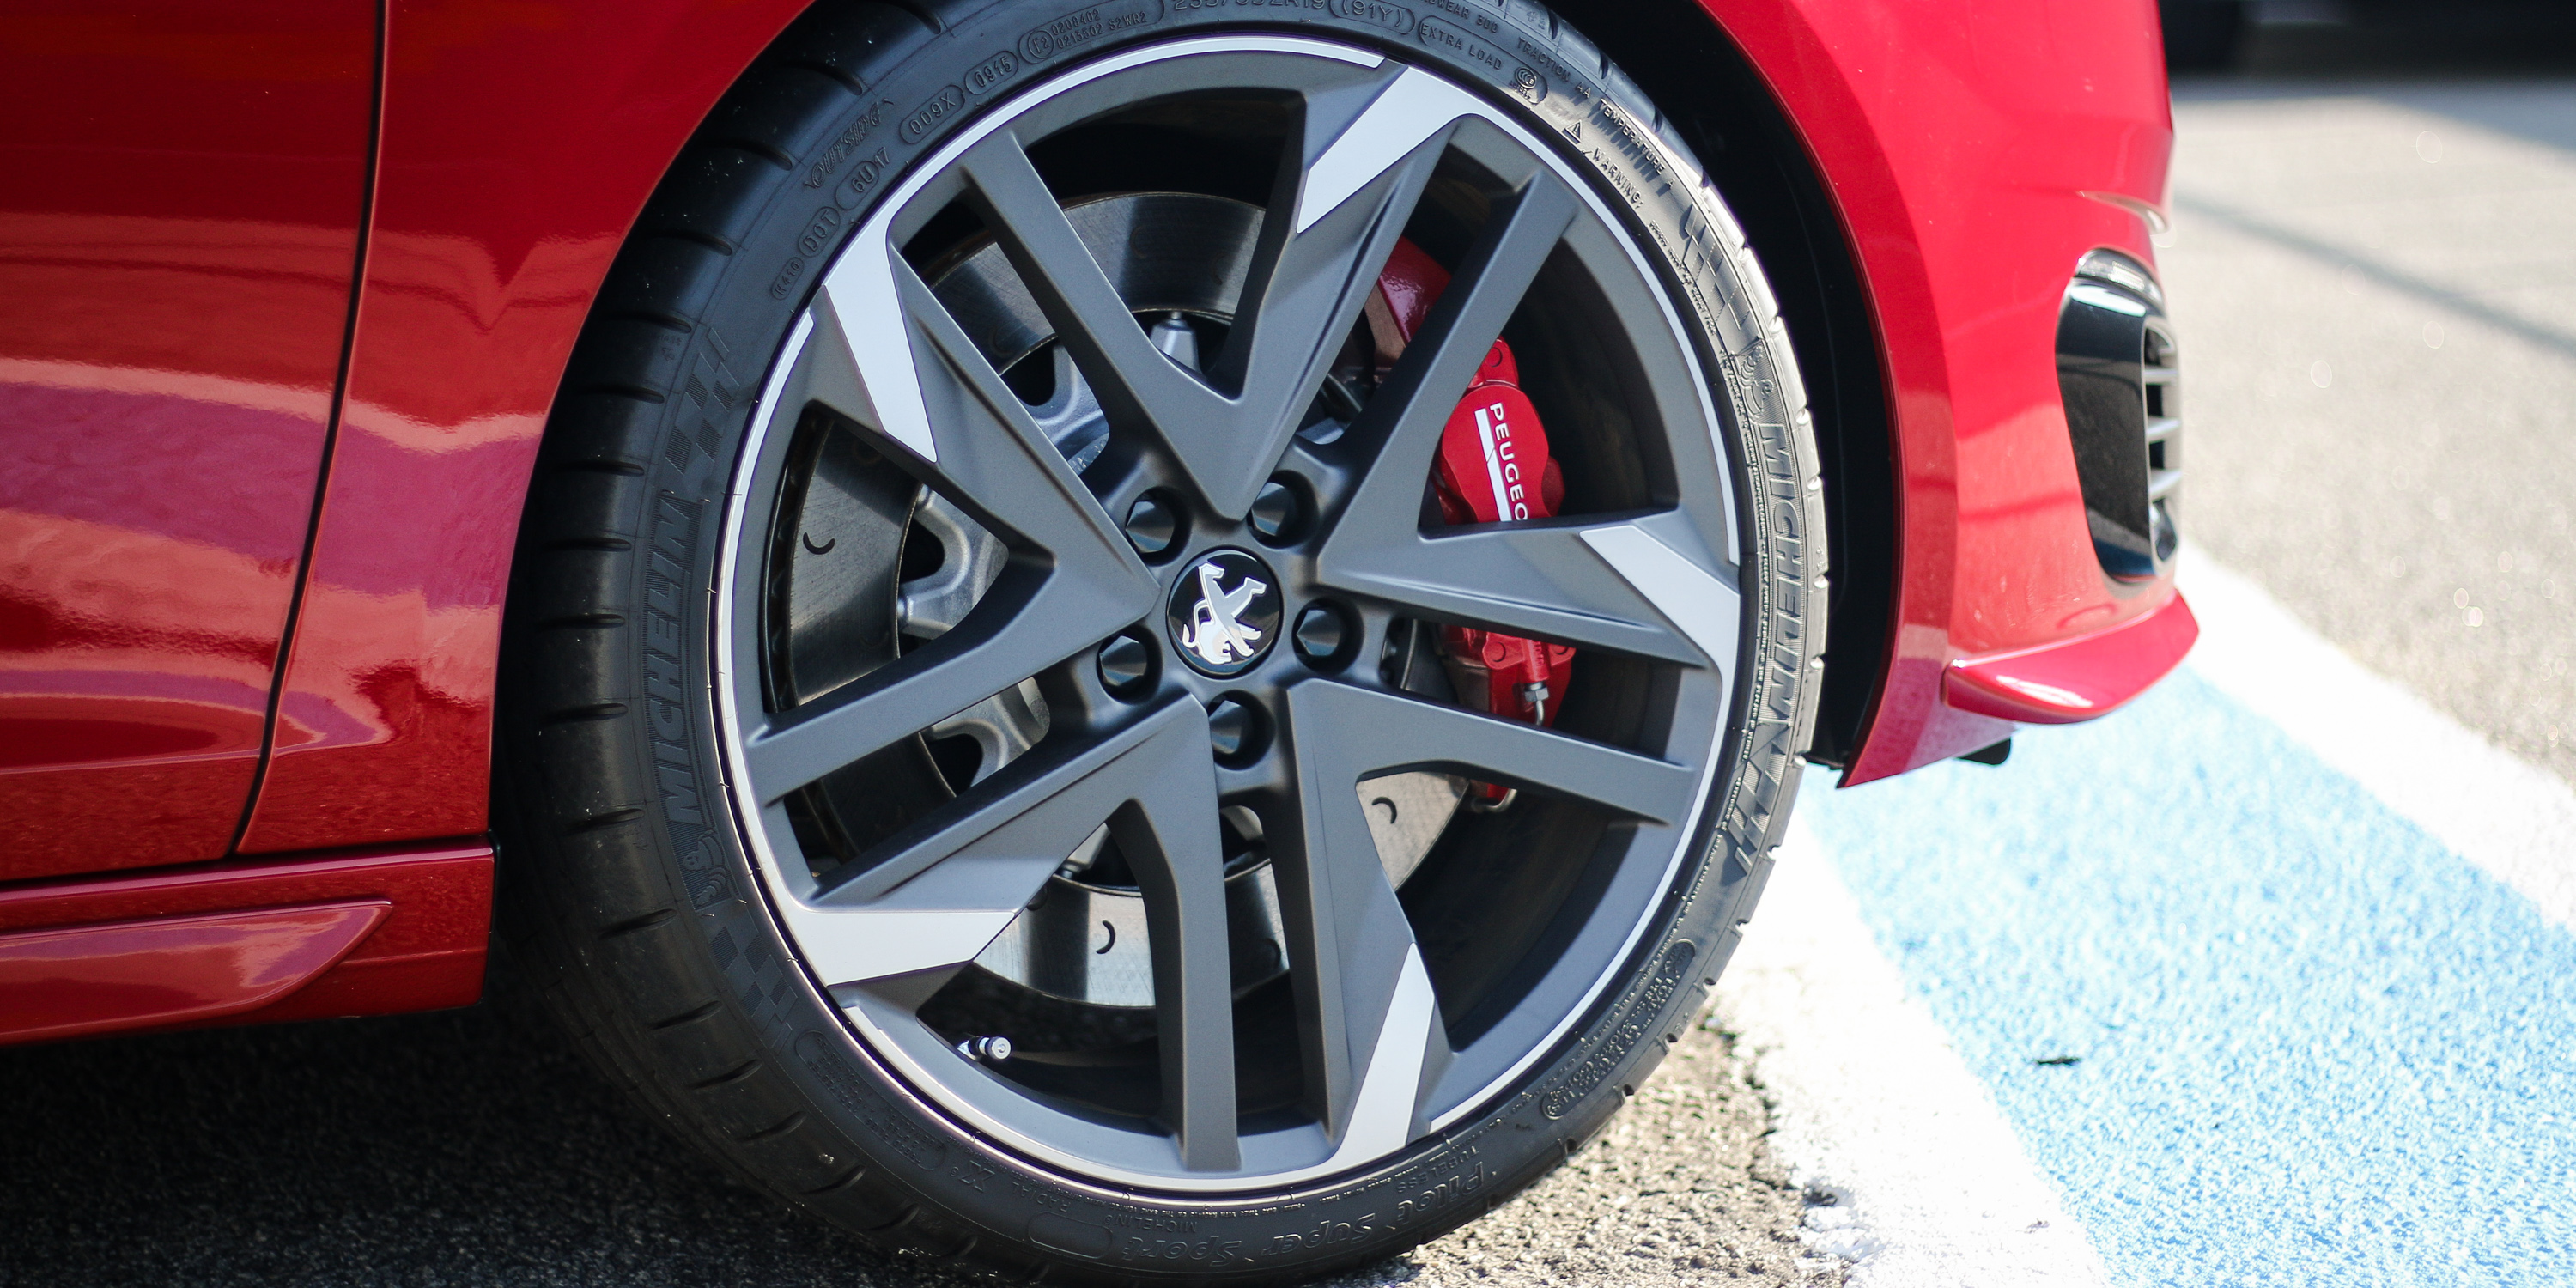 2016 Peugeot 308 Gti Wheel Trim (View 4 of 15)